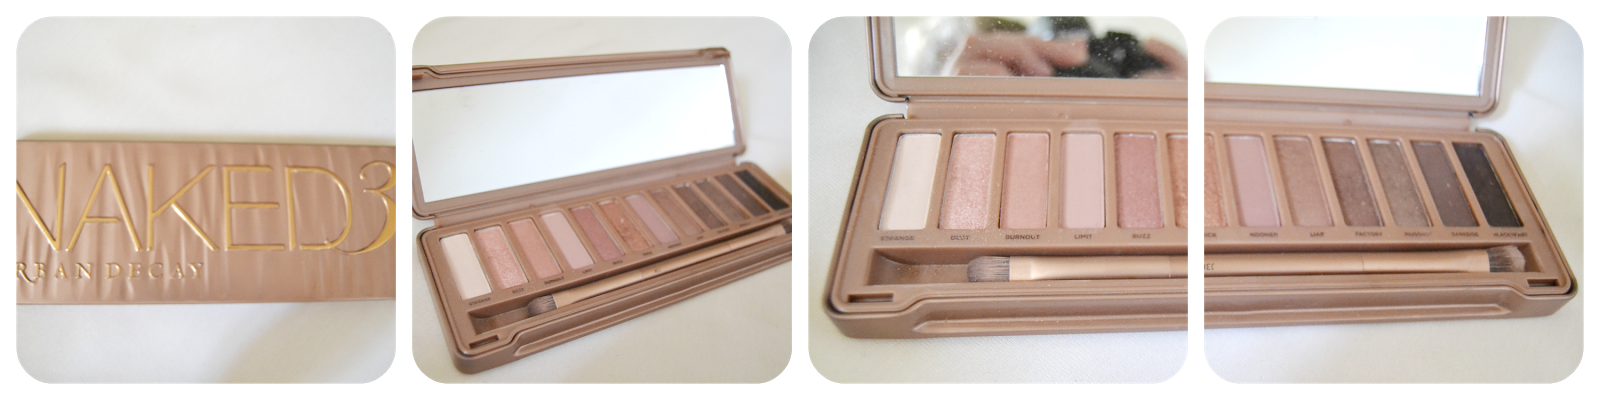 urban decay swatch naked 3